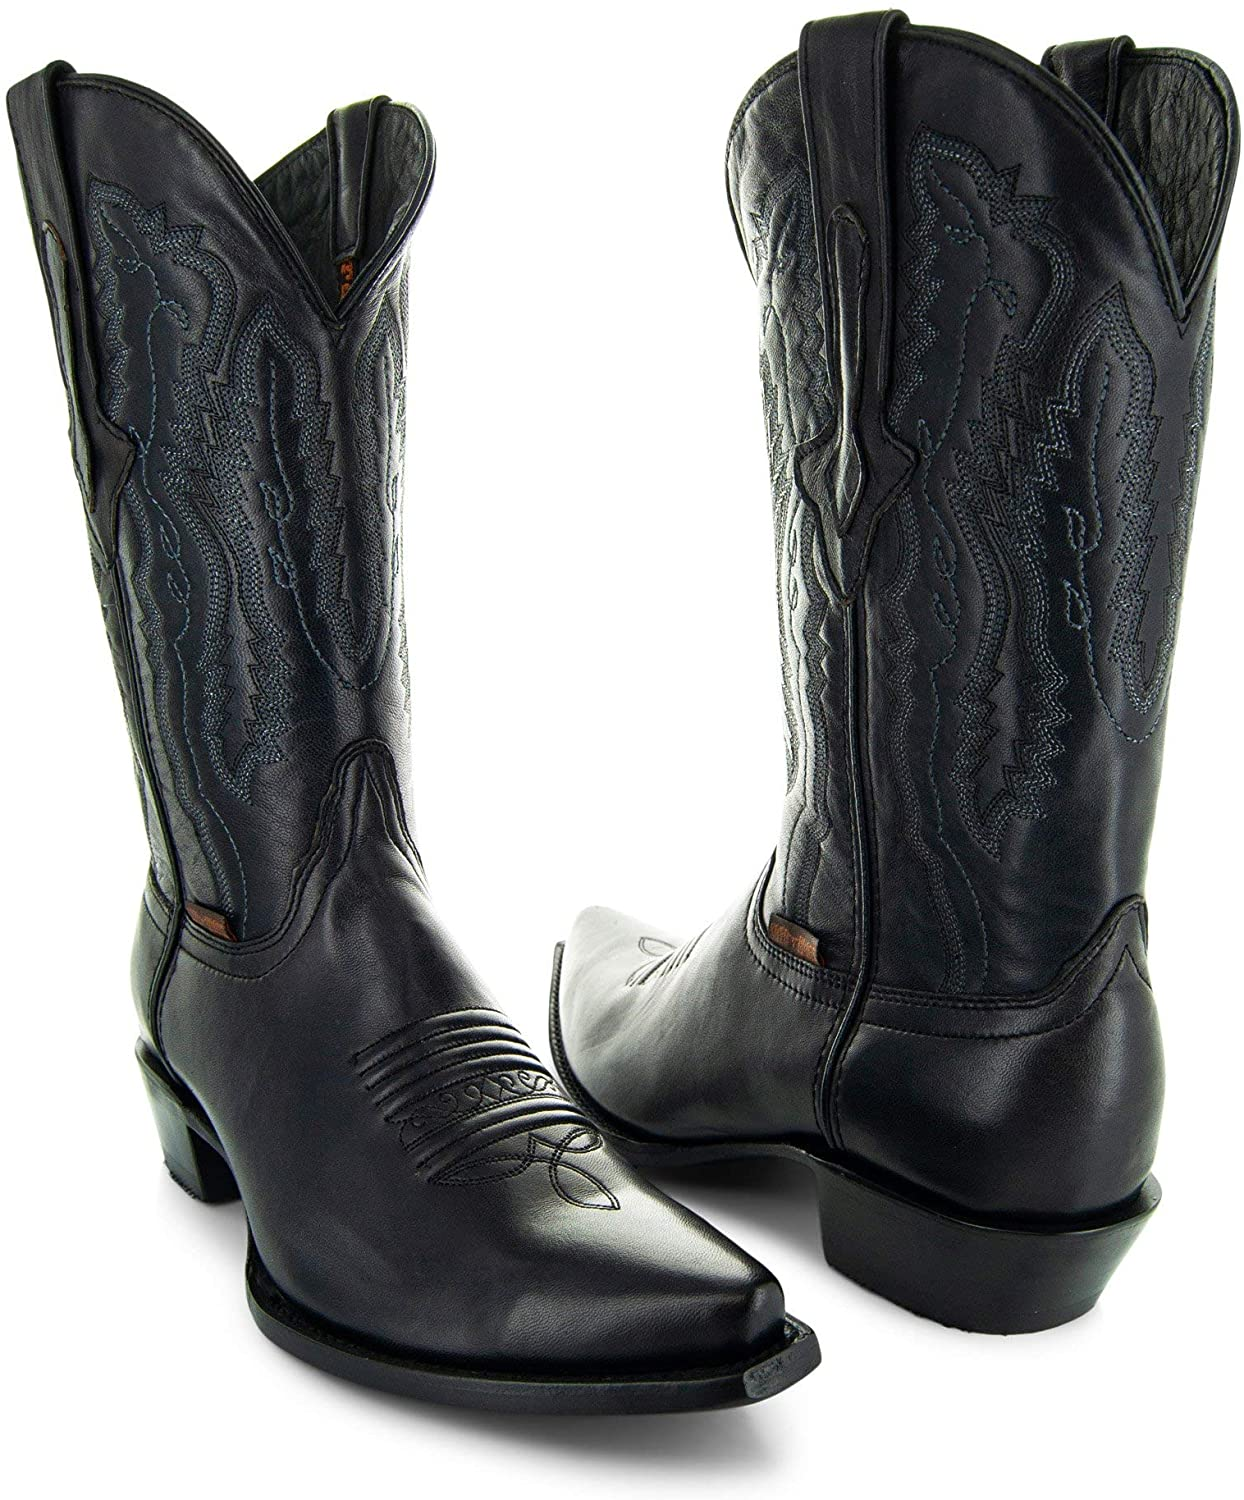 Soto low-pricing Boots Mens Burnished H50030 Cowboy It is very popular Toe Snip